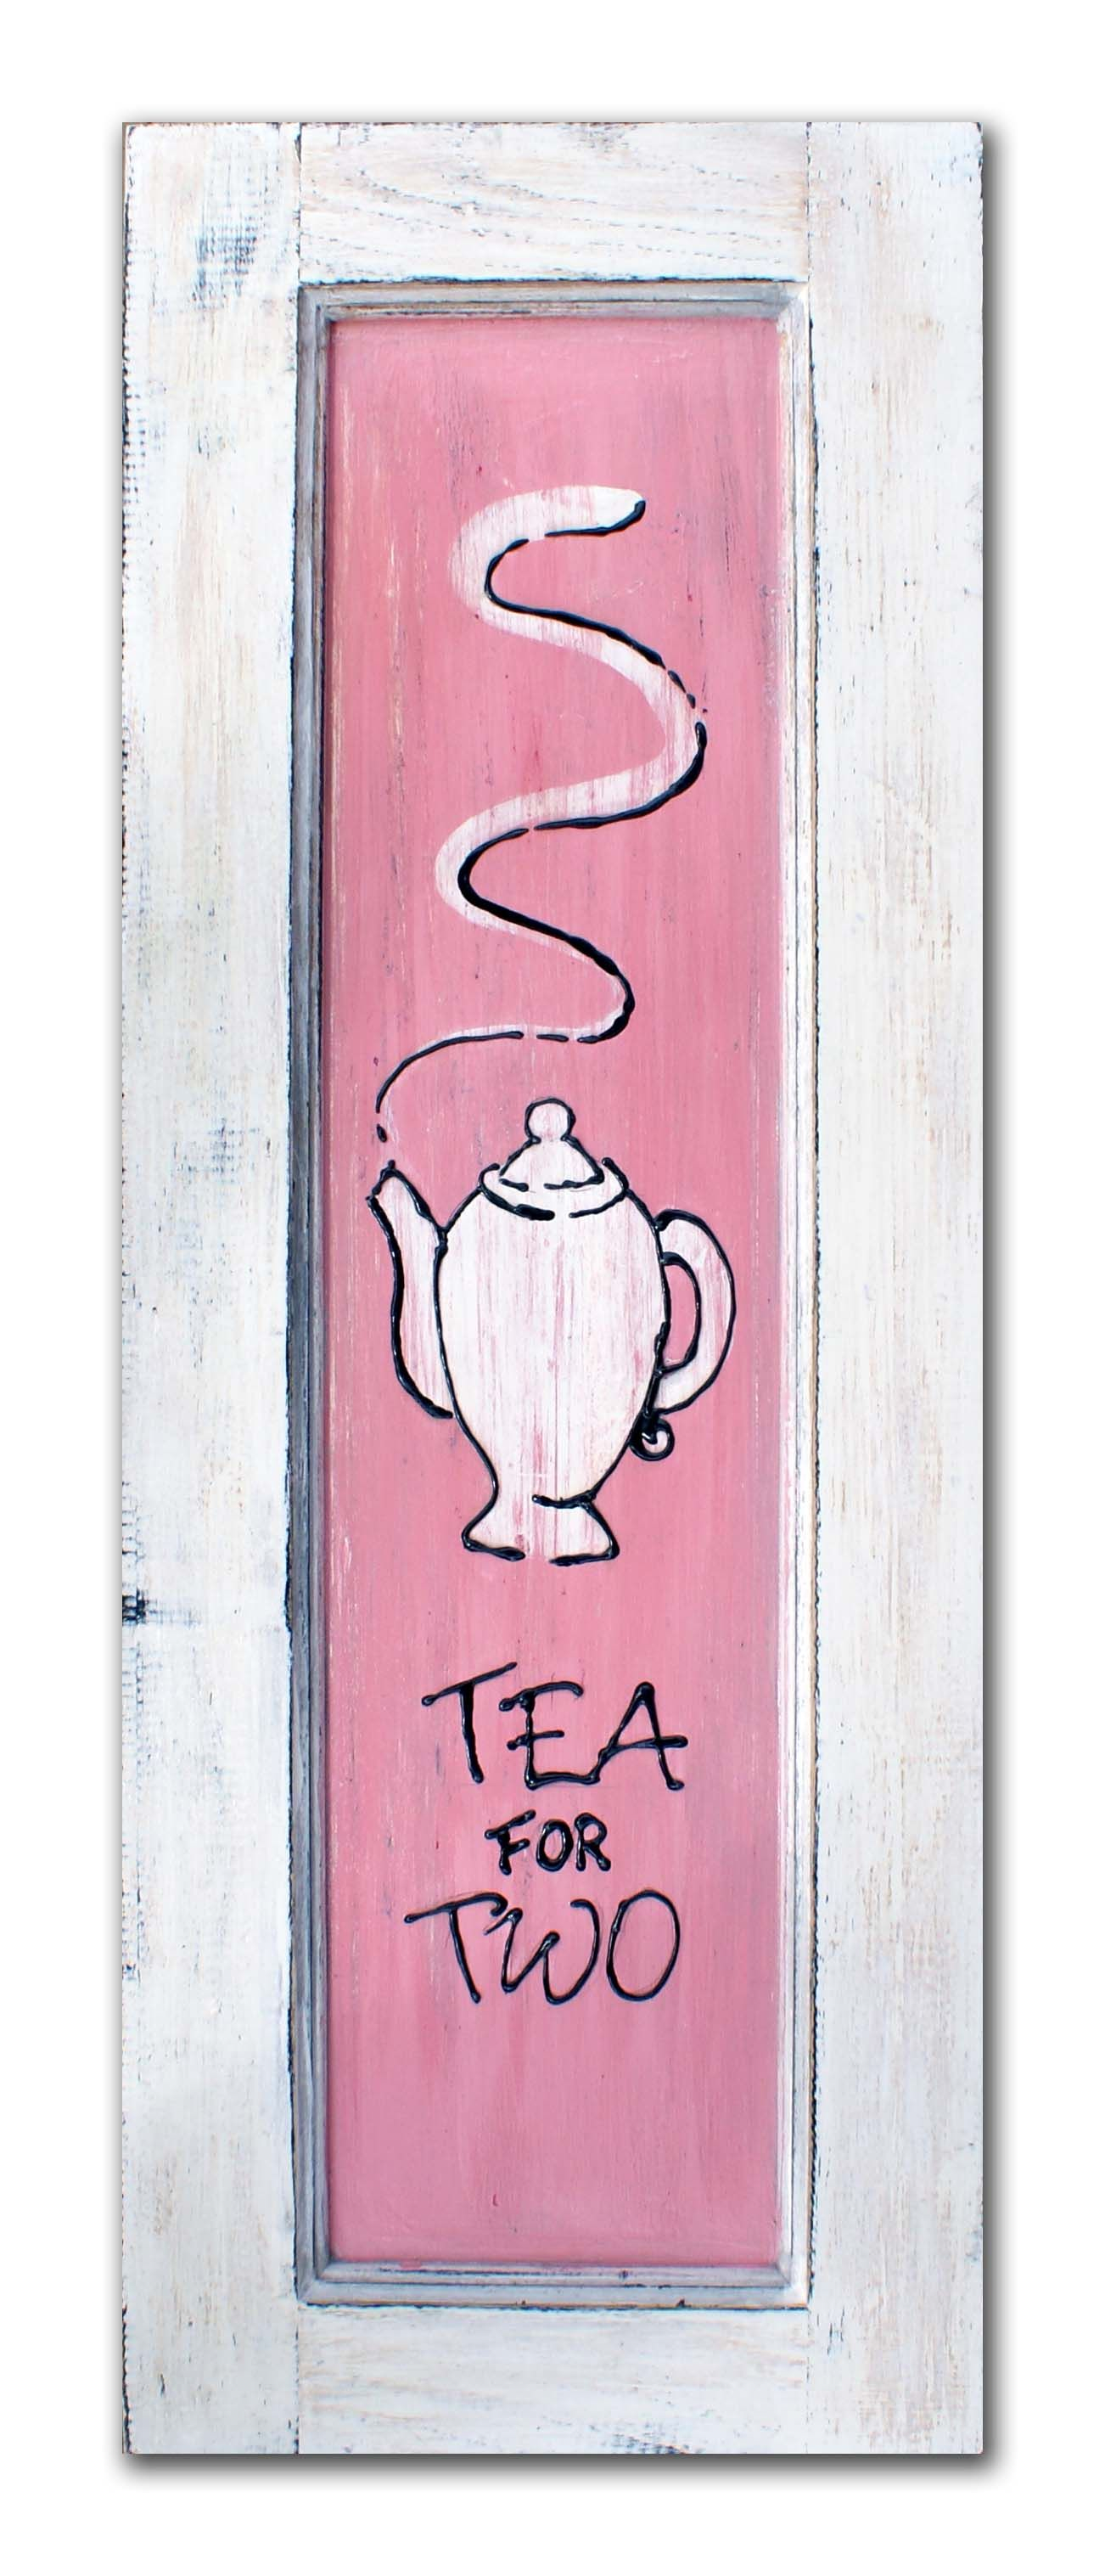 Quotes About Tea And Friendship Tea For Two Hand Painted Rustic Sign Made From Recycled